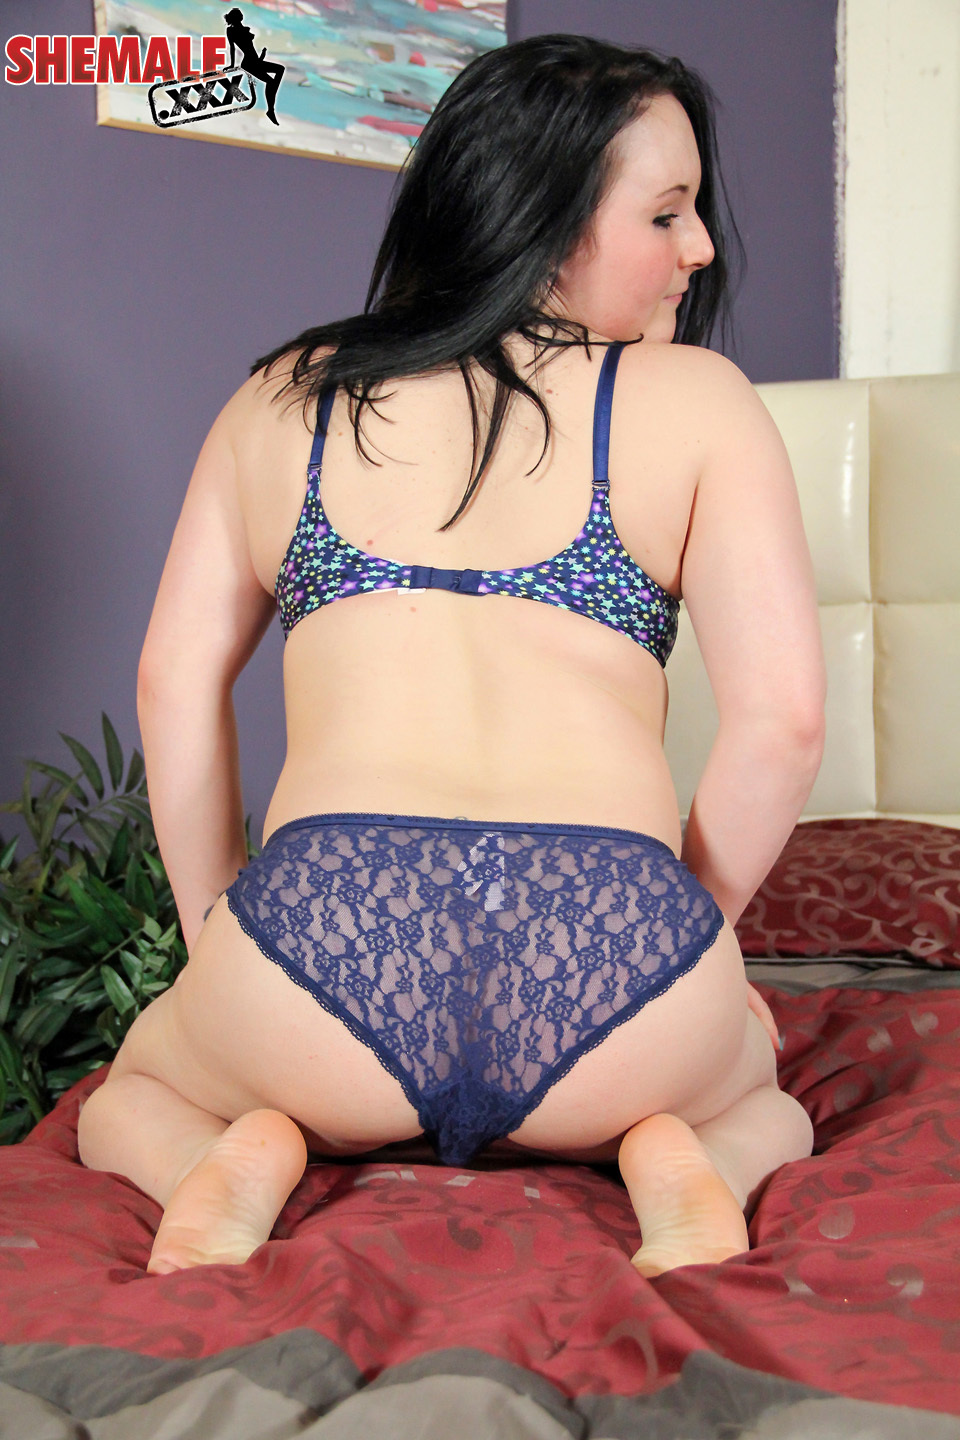 Suggestive Nice Alyssah Adams Is Back And She Is Horny! This Suggestive